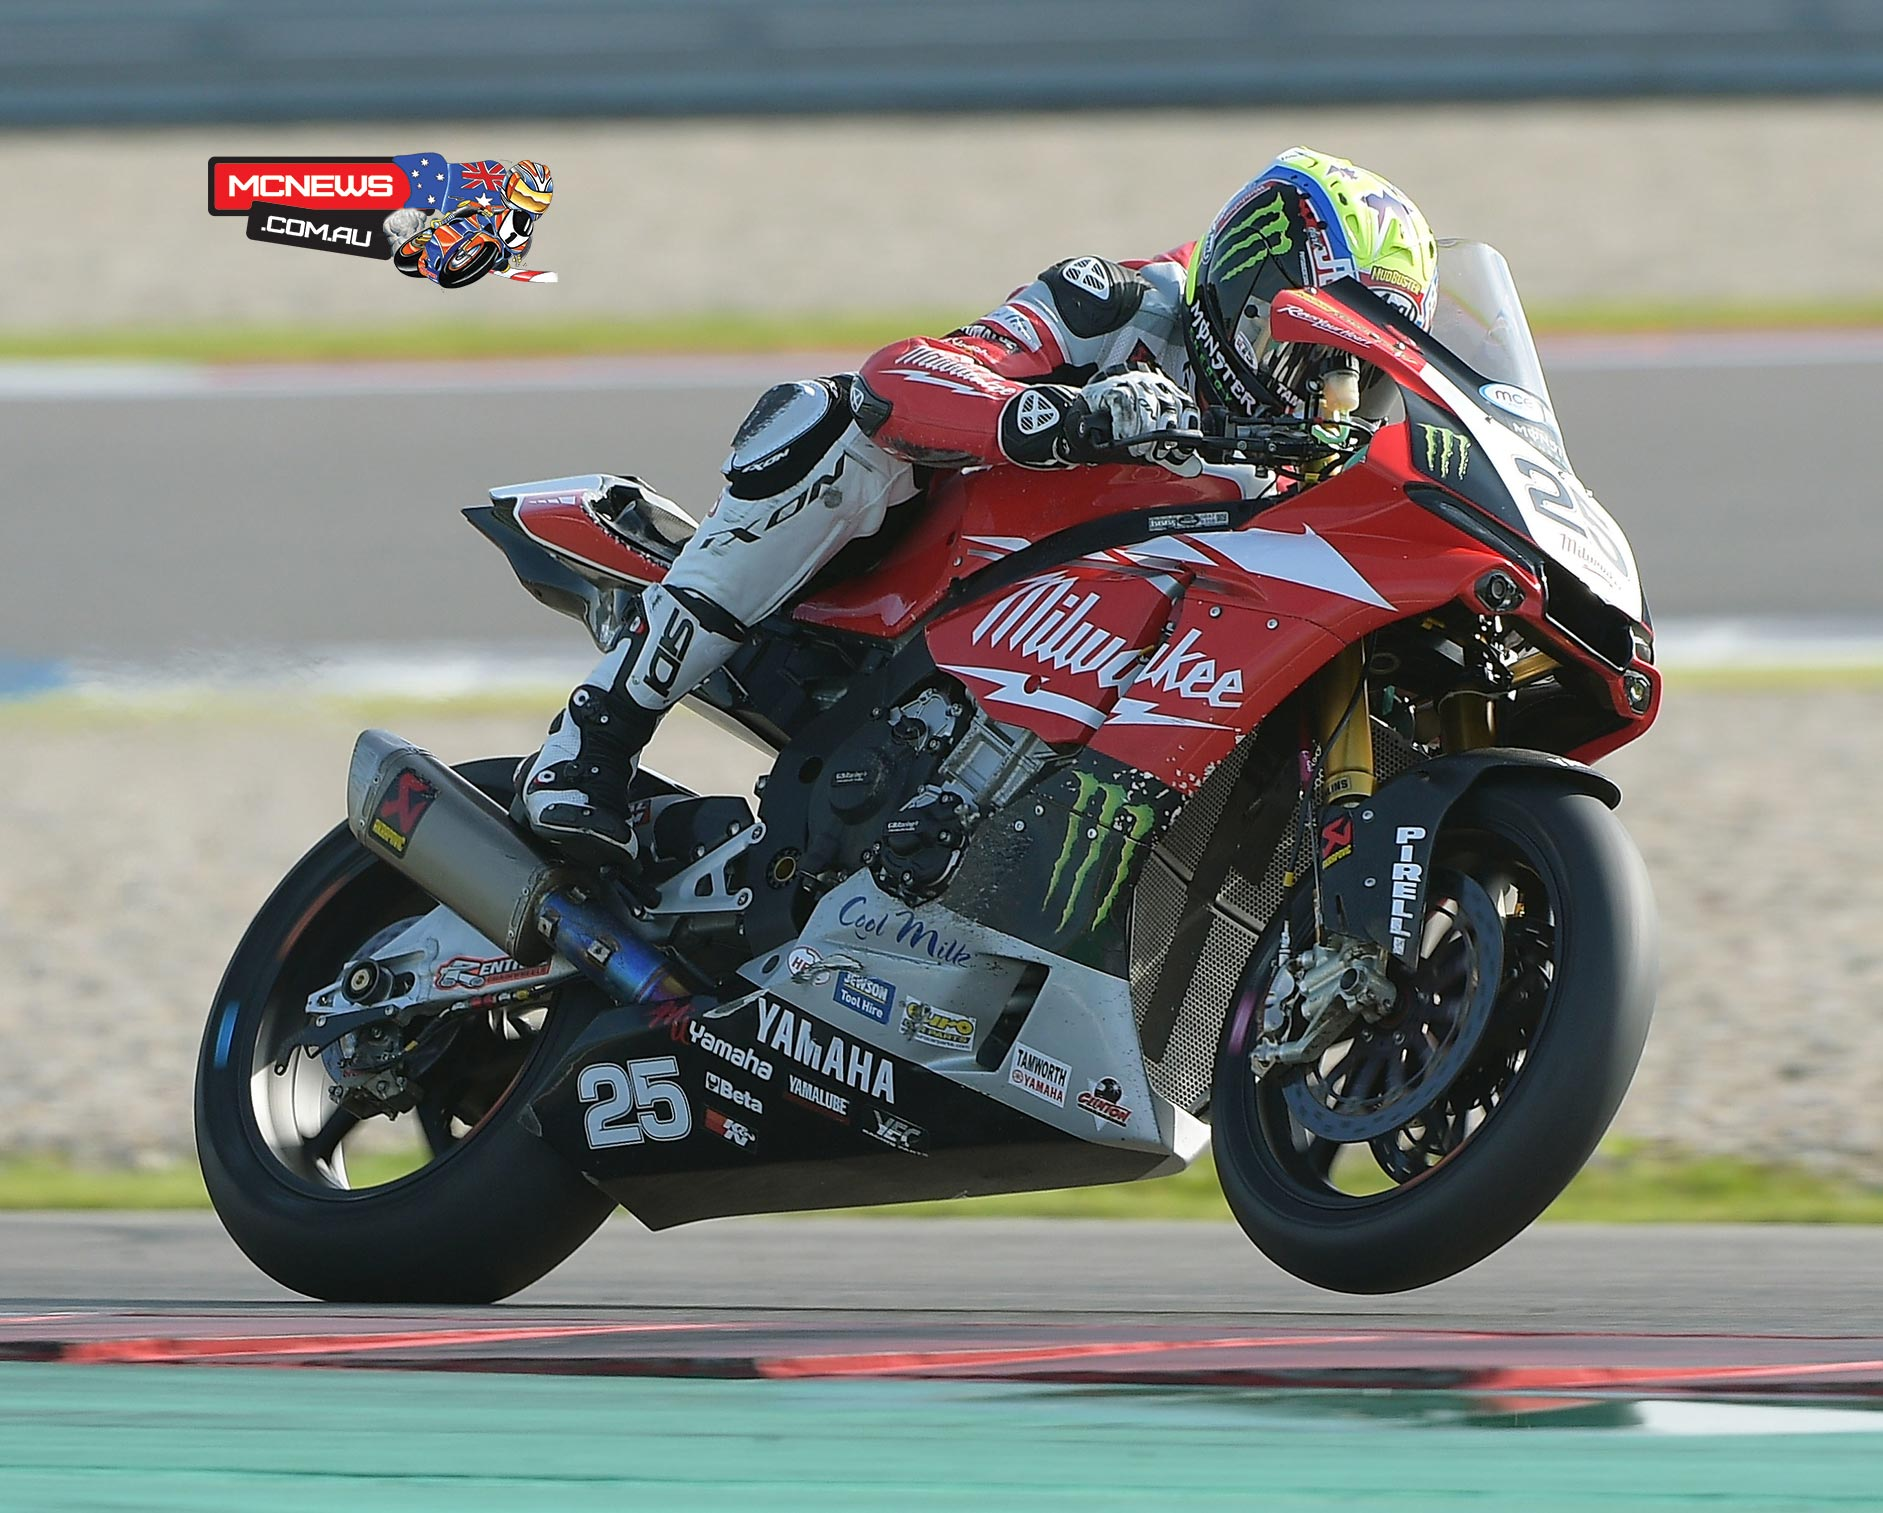 Brookes at Assen in 2015